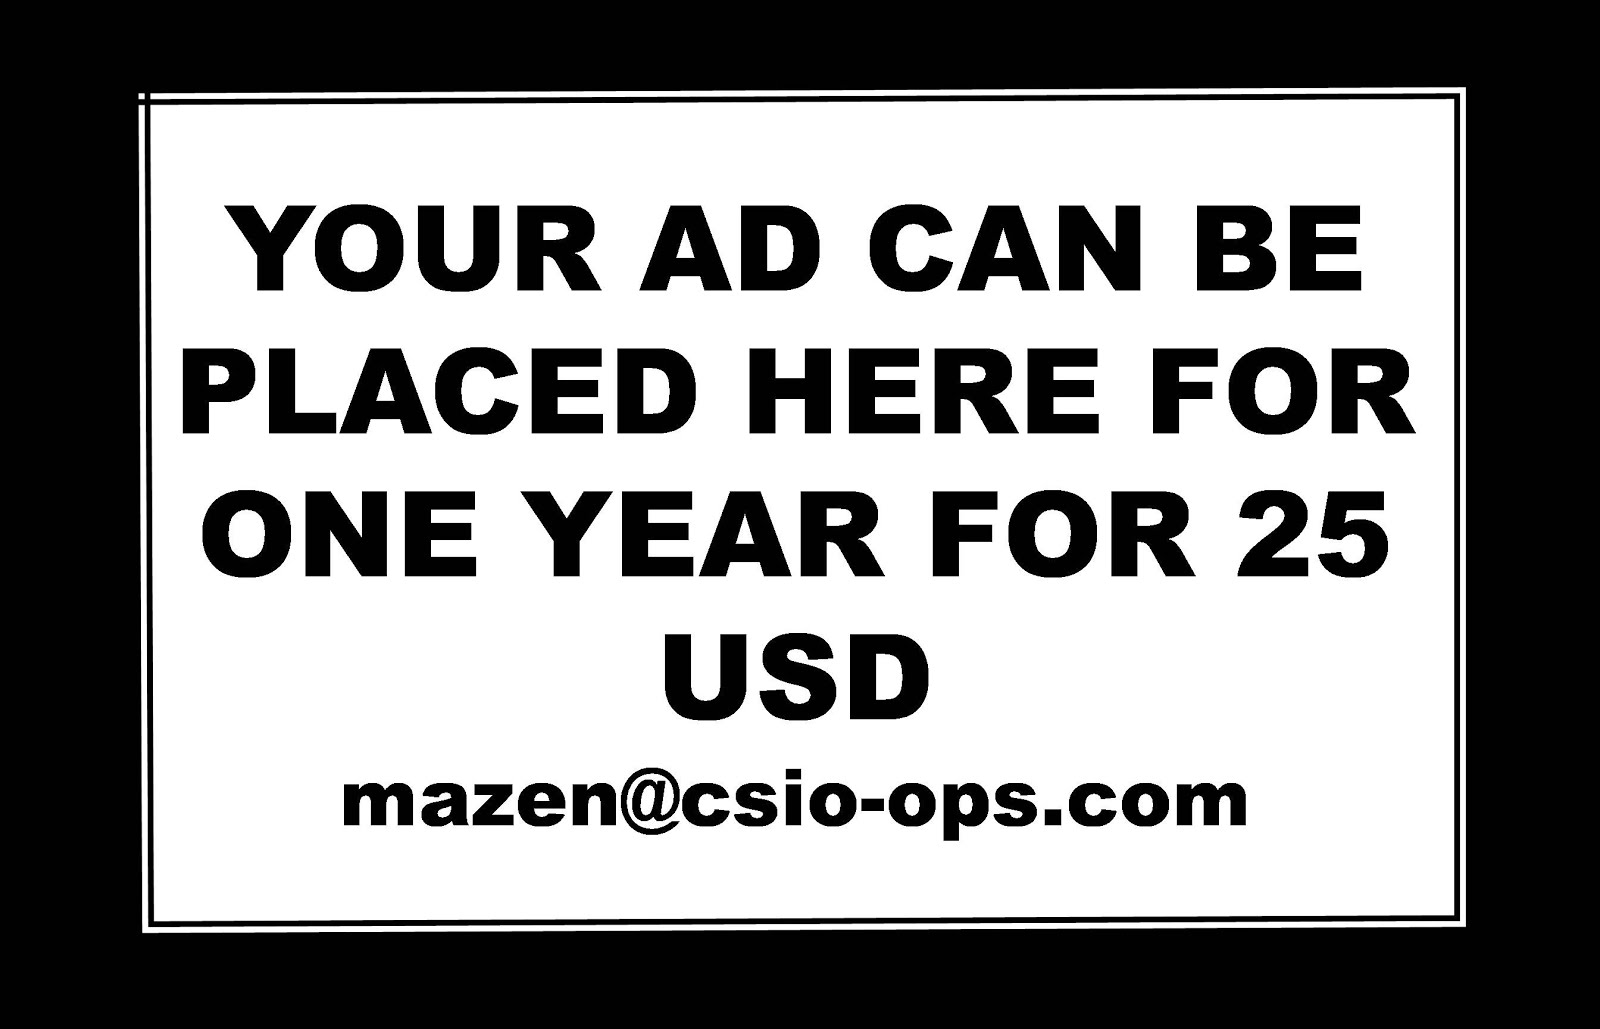 YOUR AD CAN BE PLACED HERE FOR ONE MONTH